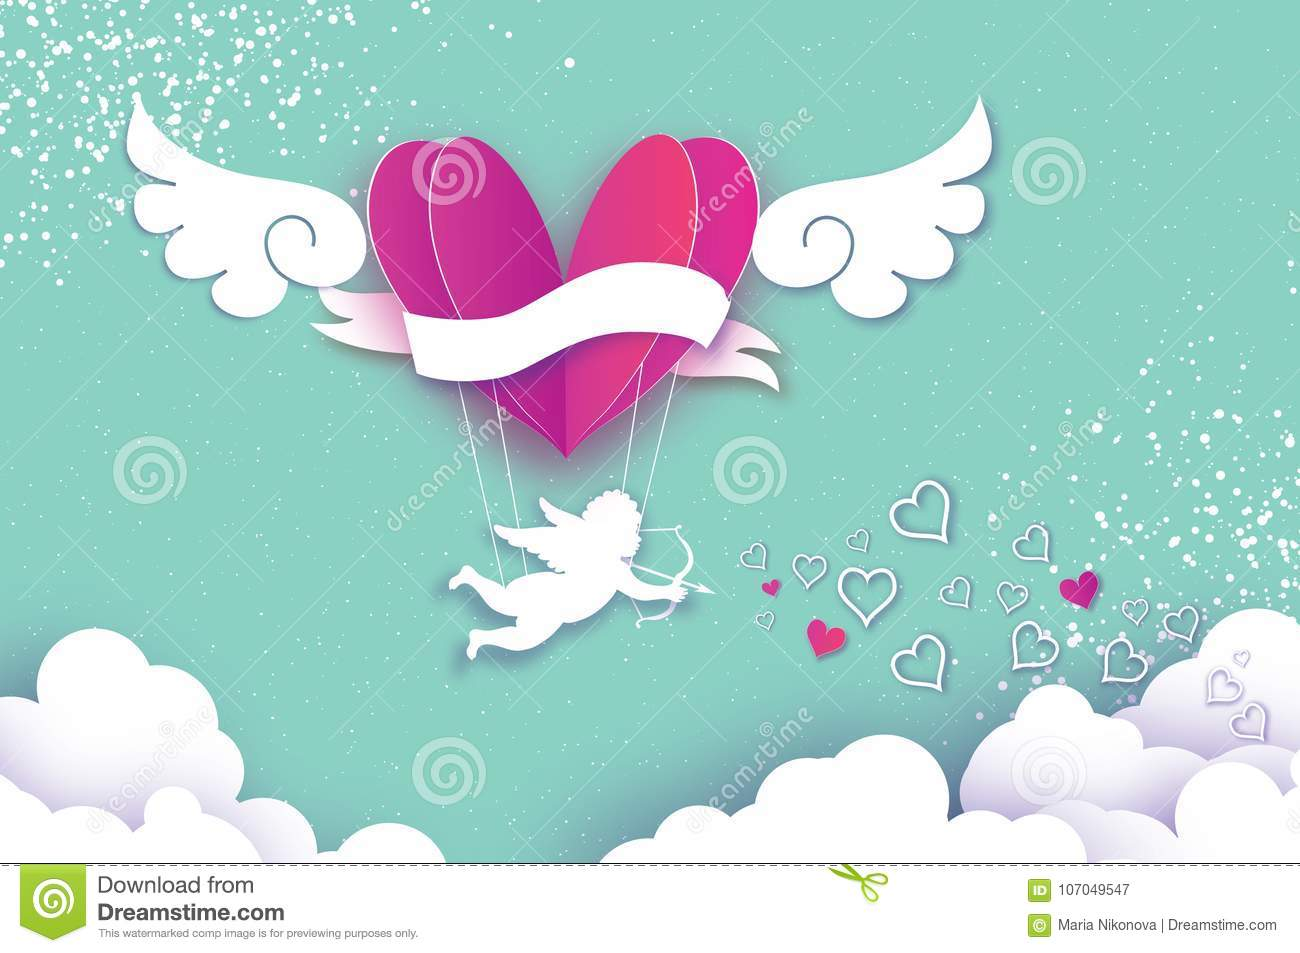 Origami boy gallery craft decoration ideas flying cupid little angel love pink heart in paper cut style flying cupid little angel love jeuxipadfo Choice Image